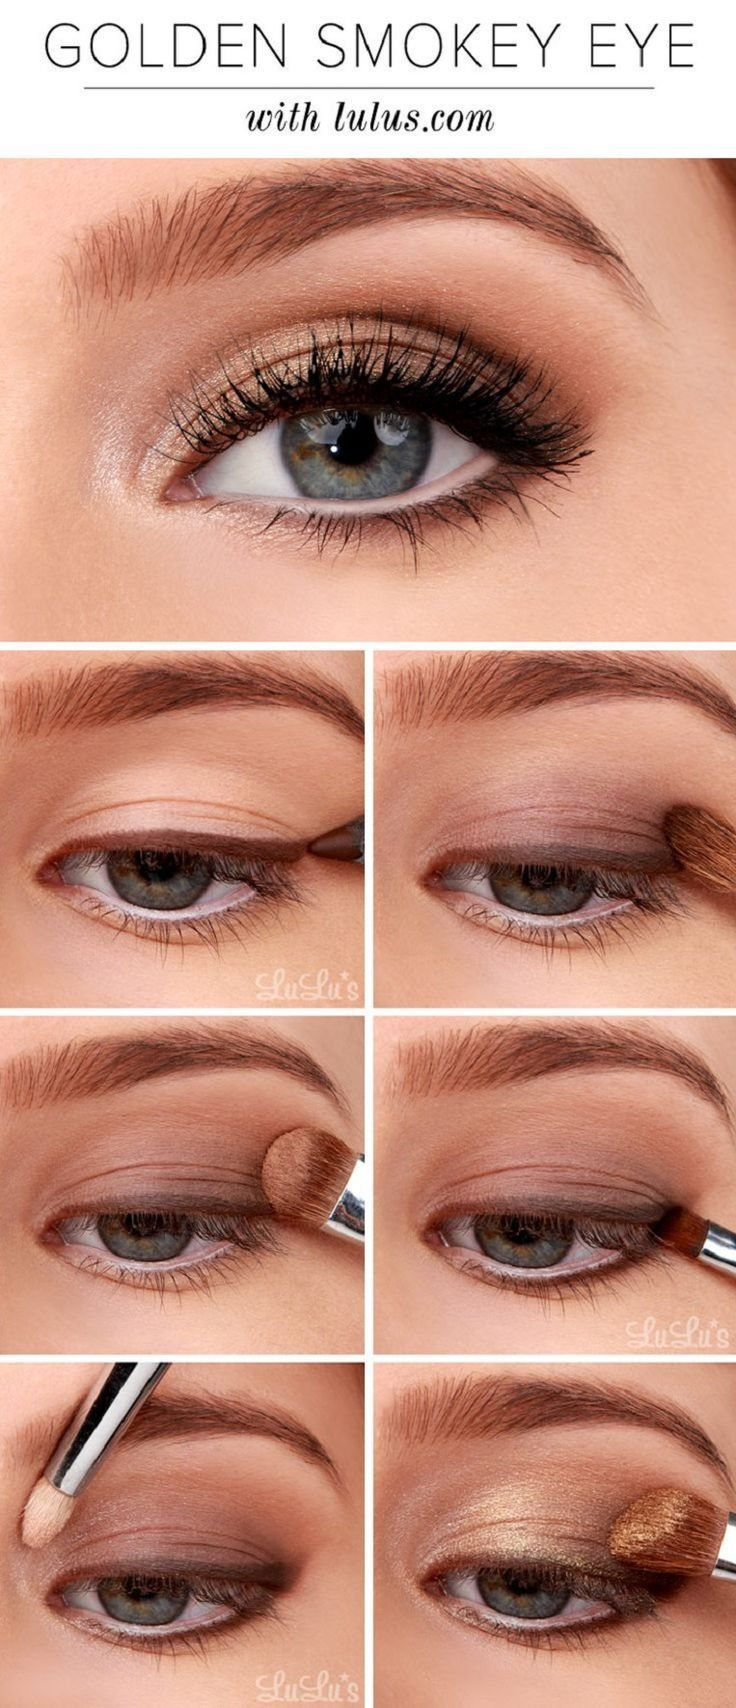 Smokey Eyes:  Steps:  – Begin by applying chocolate brown pencil eyeliner to the upper lash line, and white pencil eyeliner to the lower waterline. – Sweep a matte, dark brown eyeshadow lightly across the lower third of the lid. – Next, apply a matte medium brown eyeshadow across the crease. – Choose a small angled brush and apply dark brown shadow to the lower lash line. – Add a hint of champagne shimmery eyeshadow to the inner corner of the eye to create a pop. – Apply a golden shimmer…